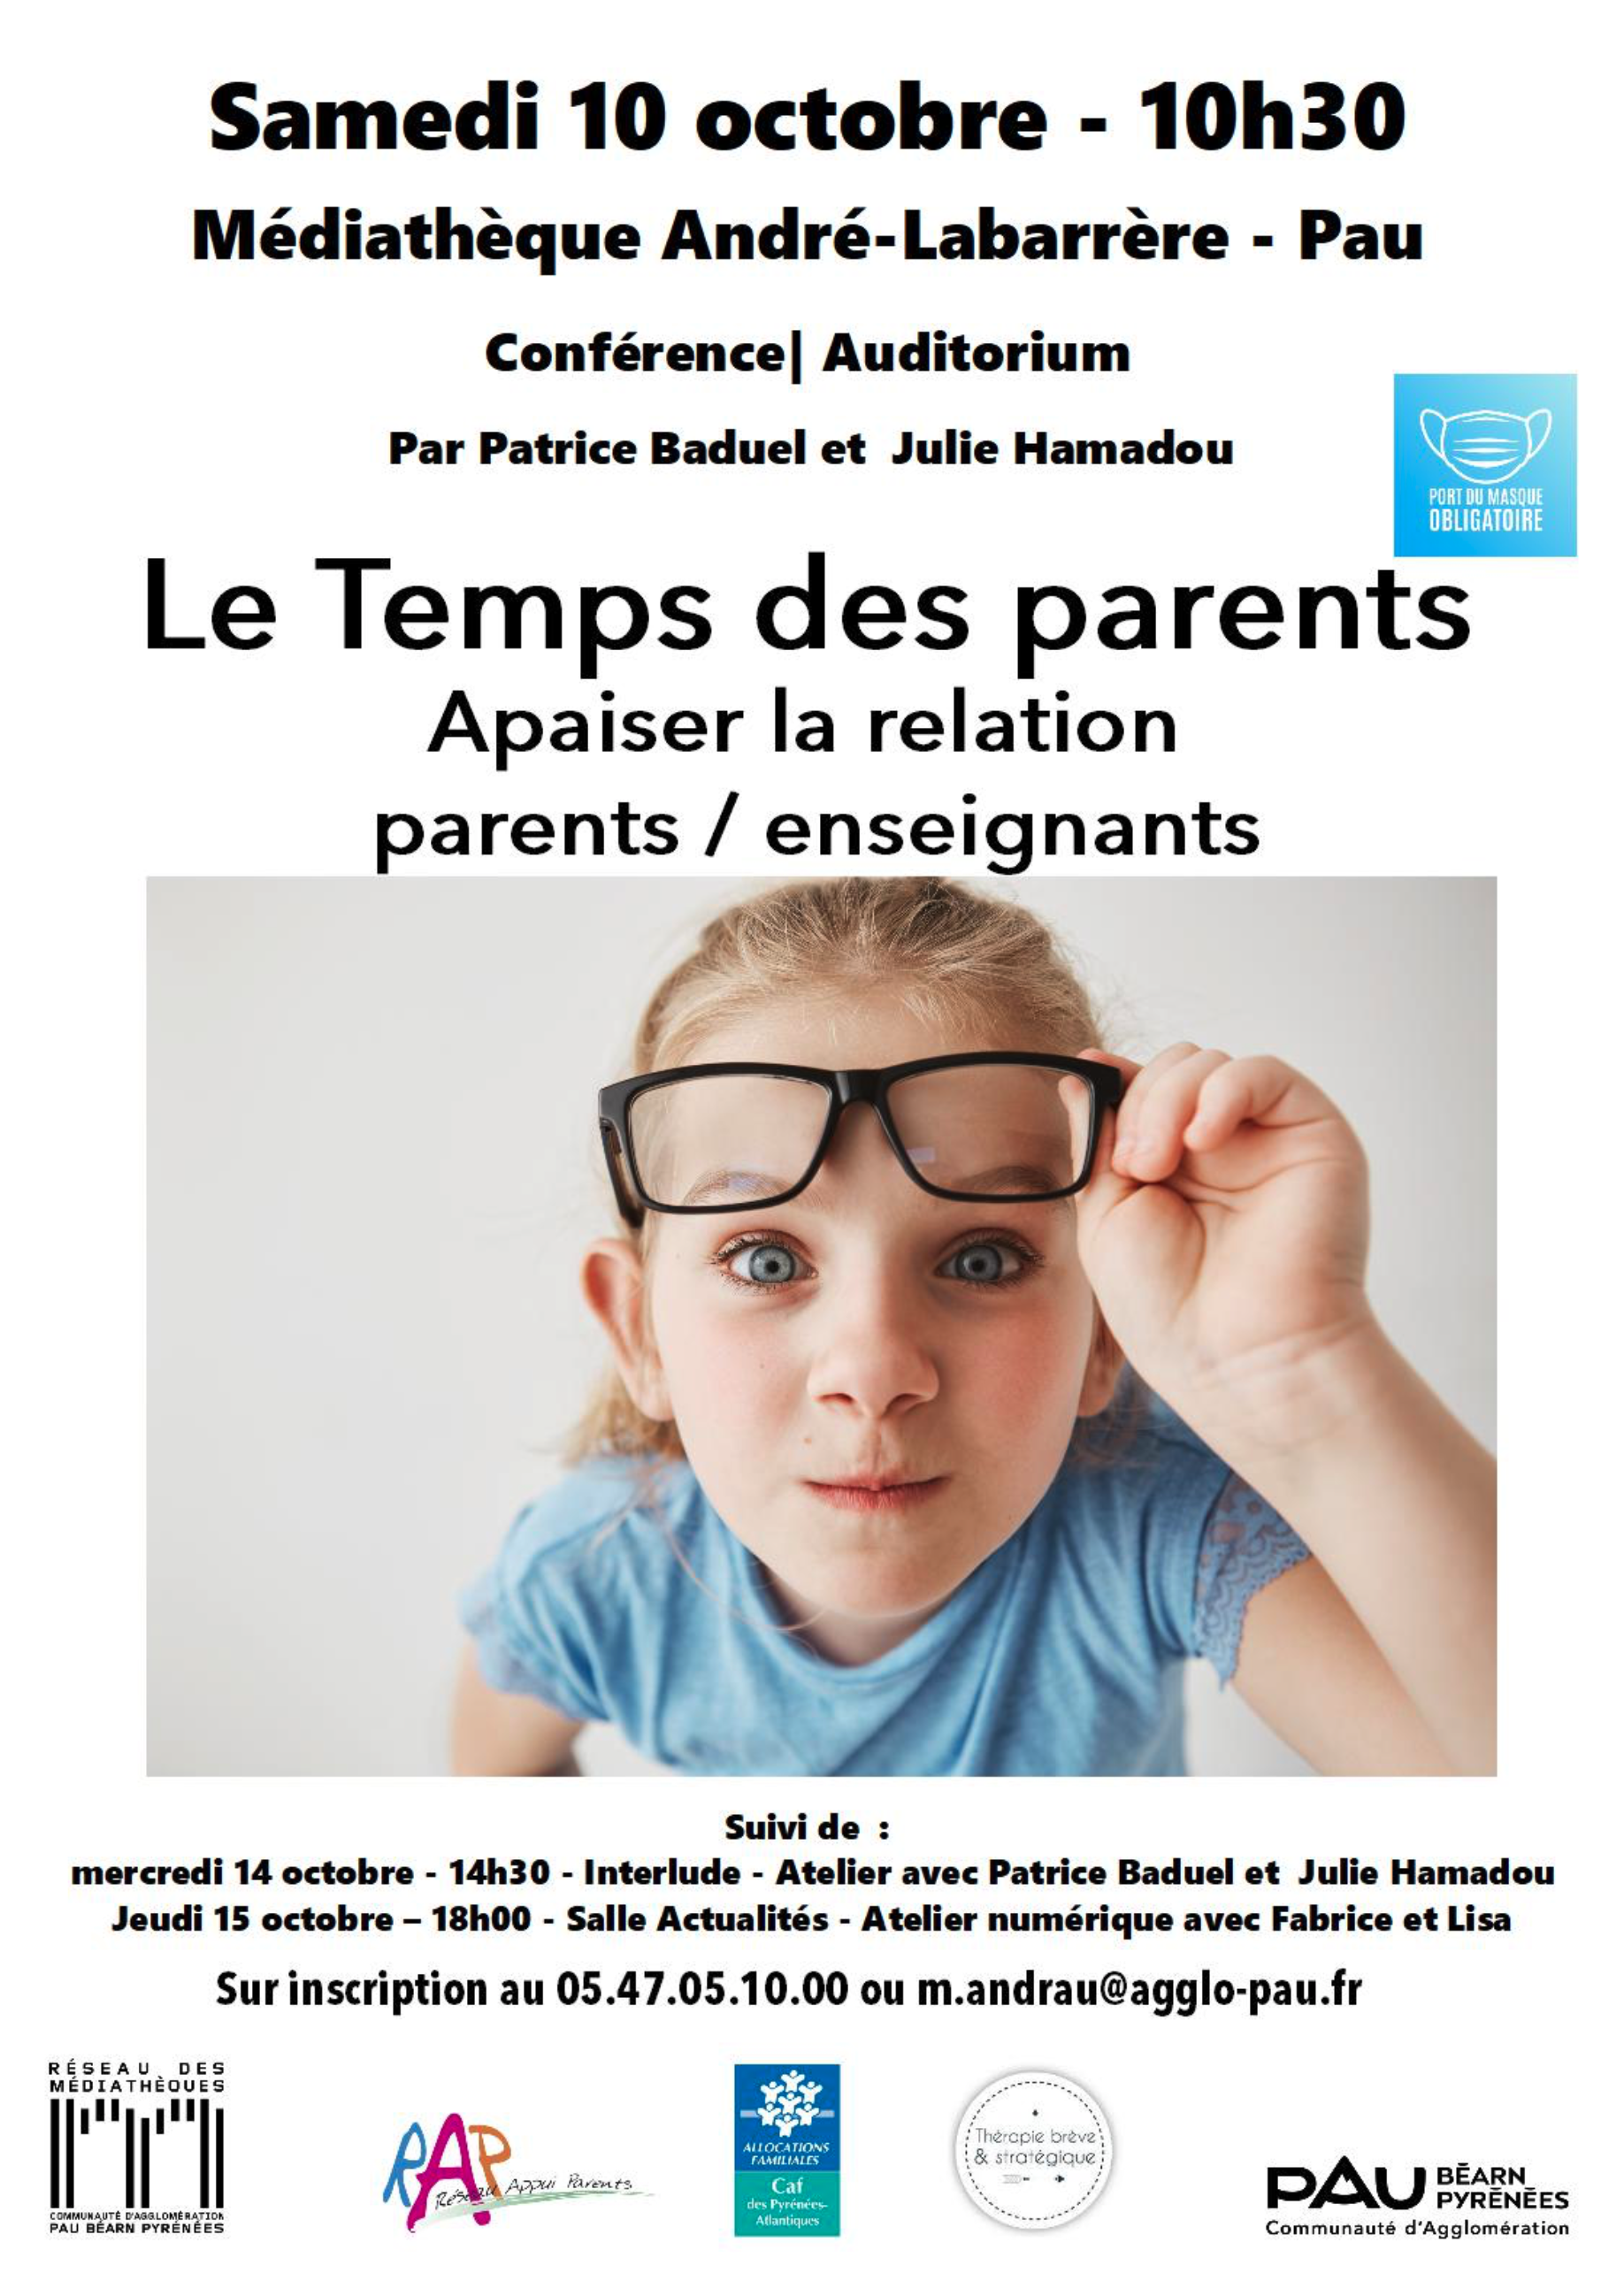 Le temps des parents